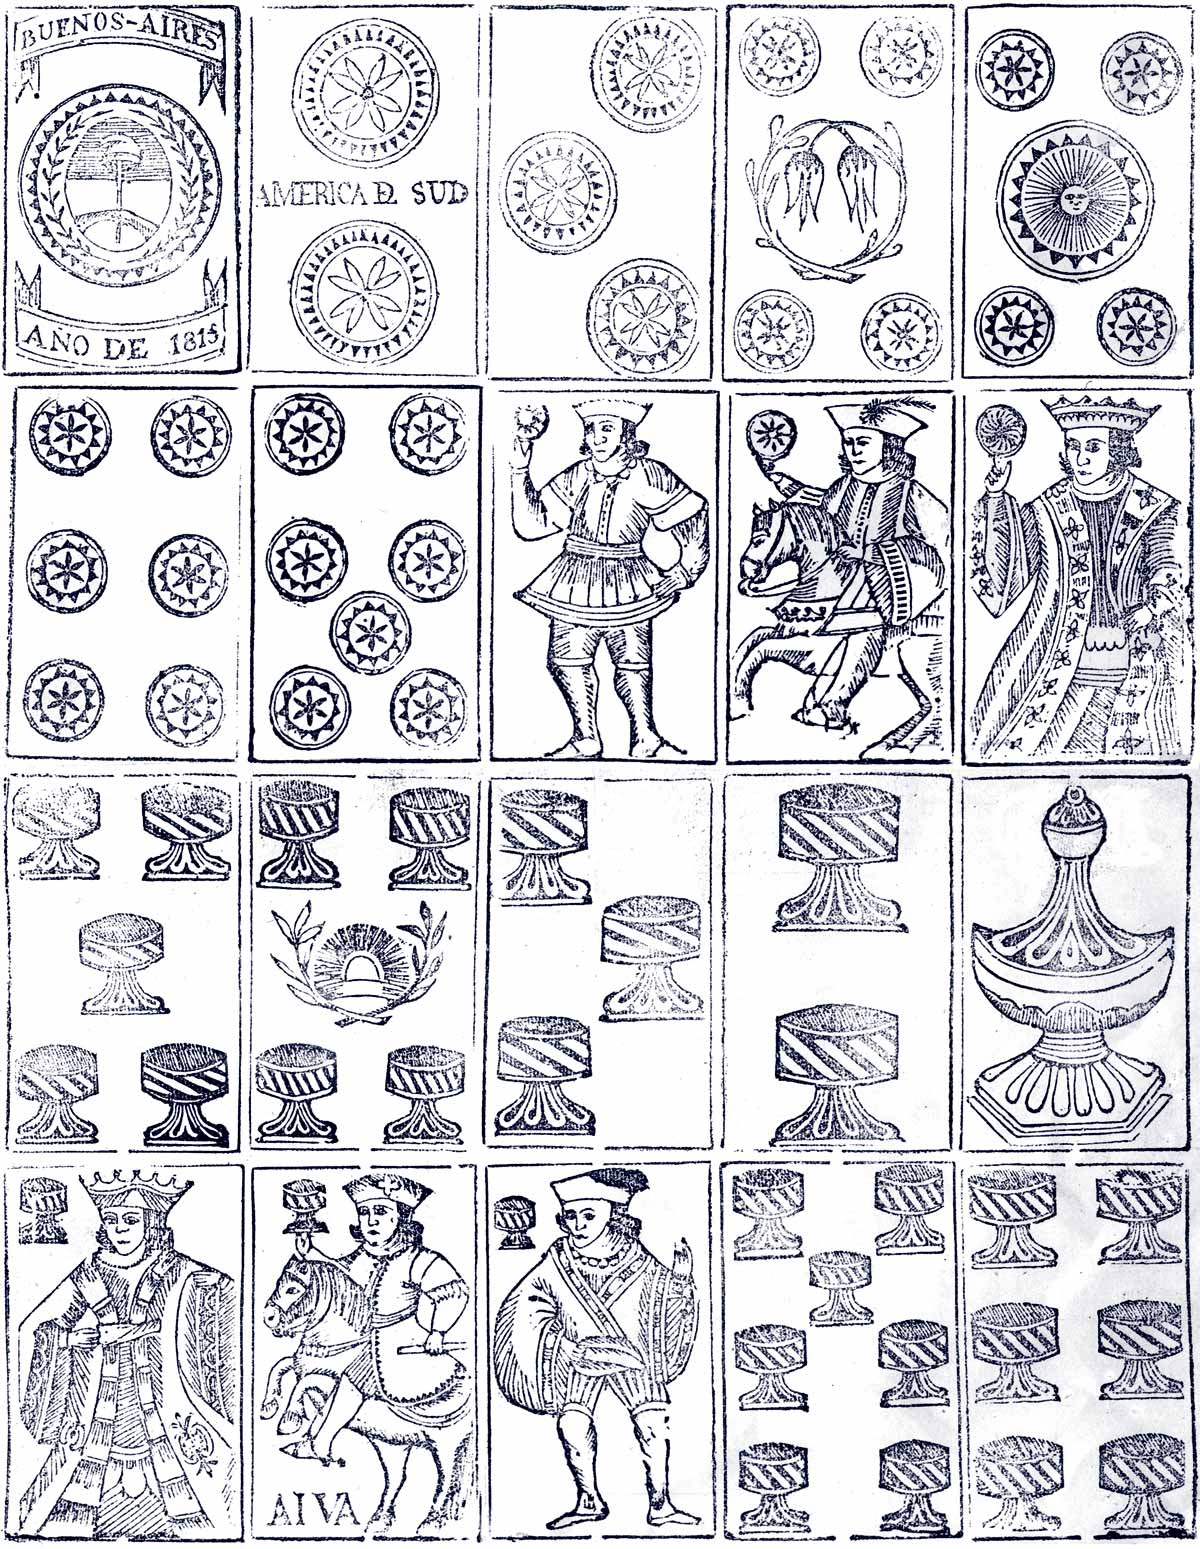 Playing cards made in Buenos Aires, 1815